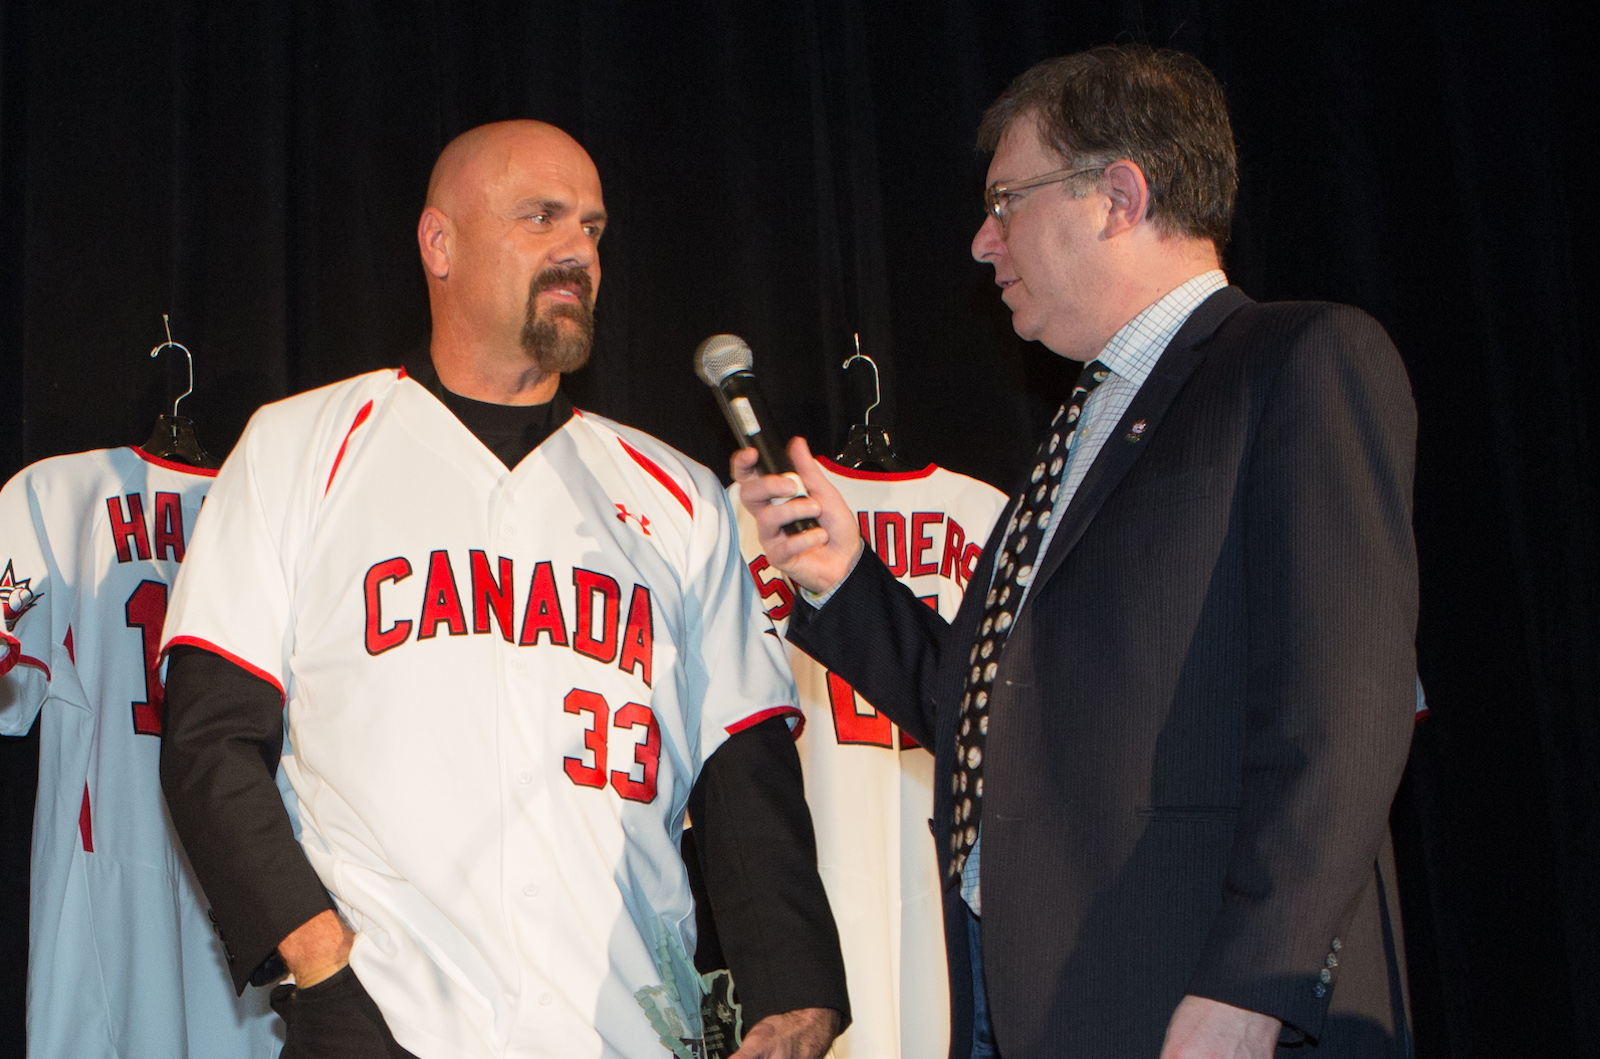 Register today for the 2019 Baseball Canada National Teams Awards Banquet & Fundraiser!